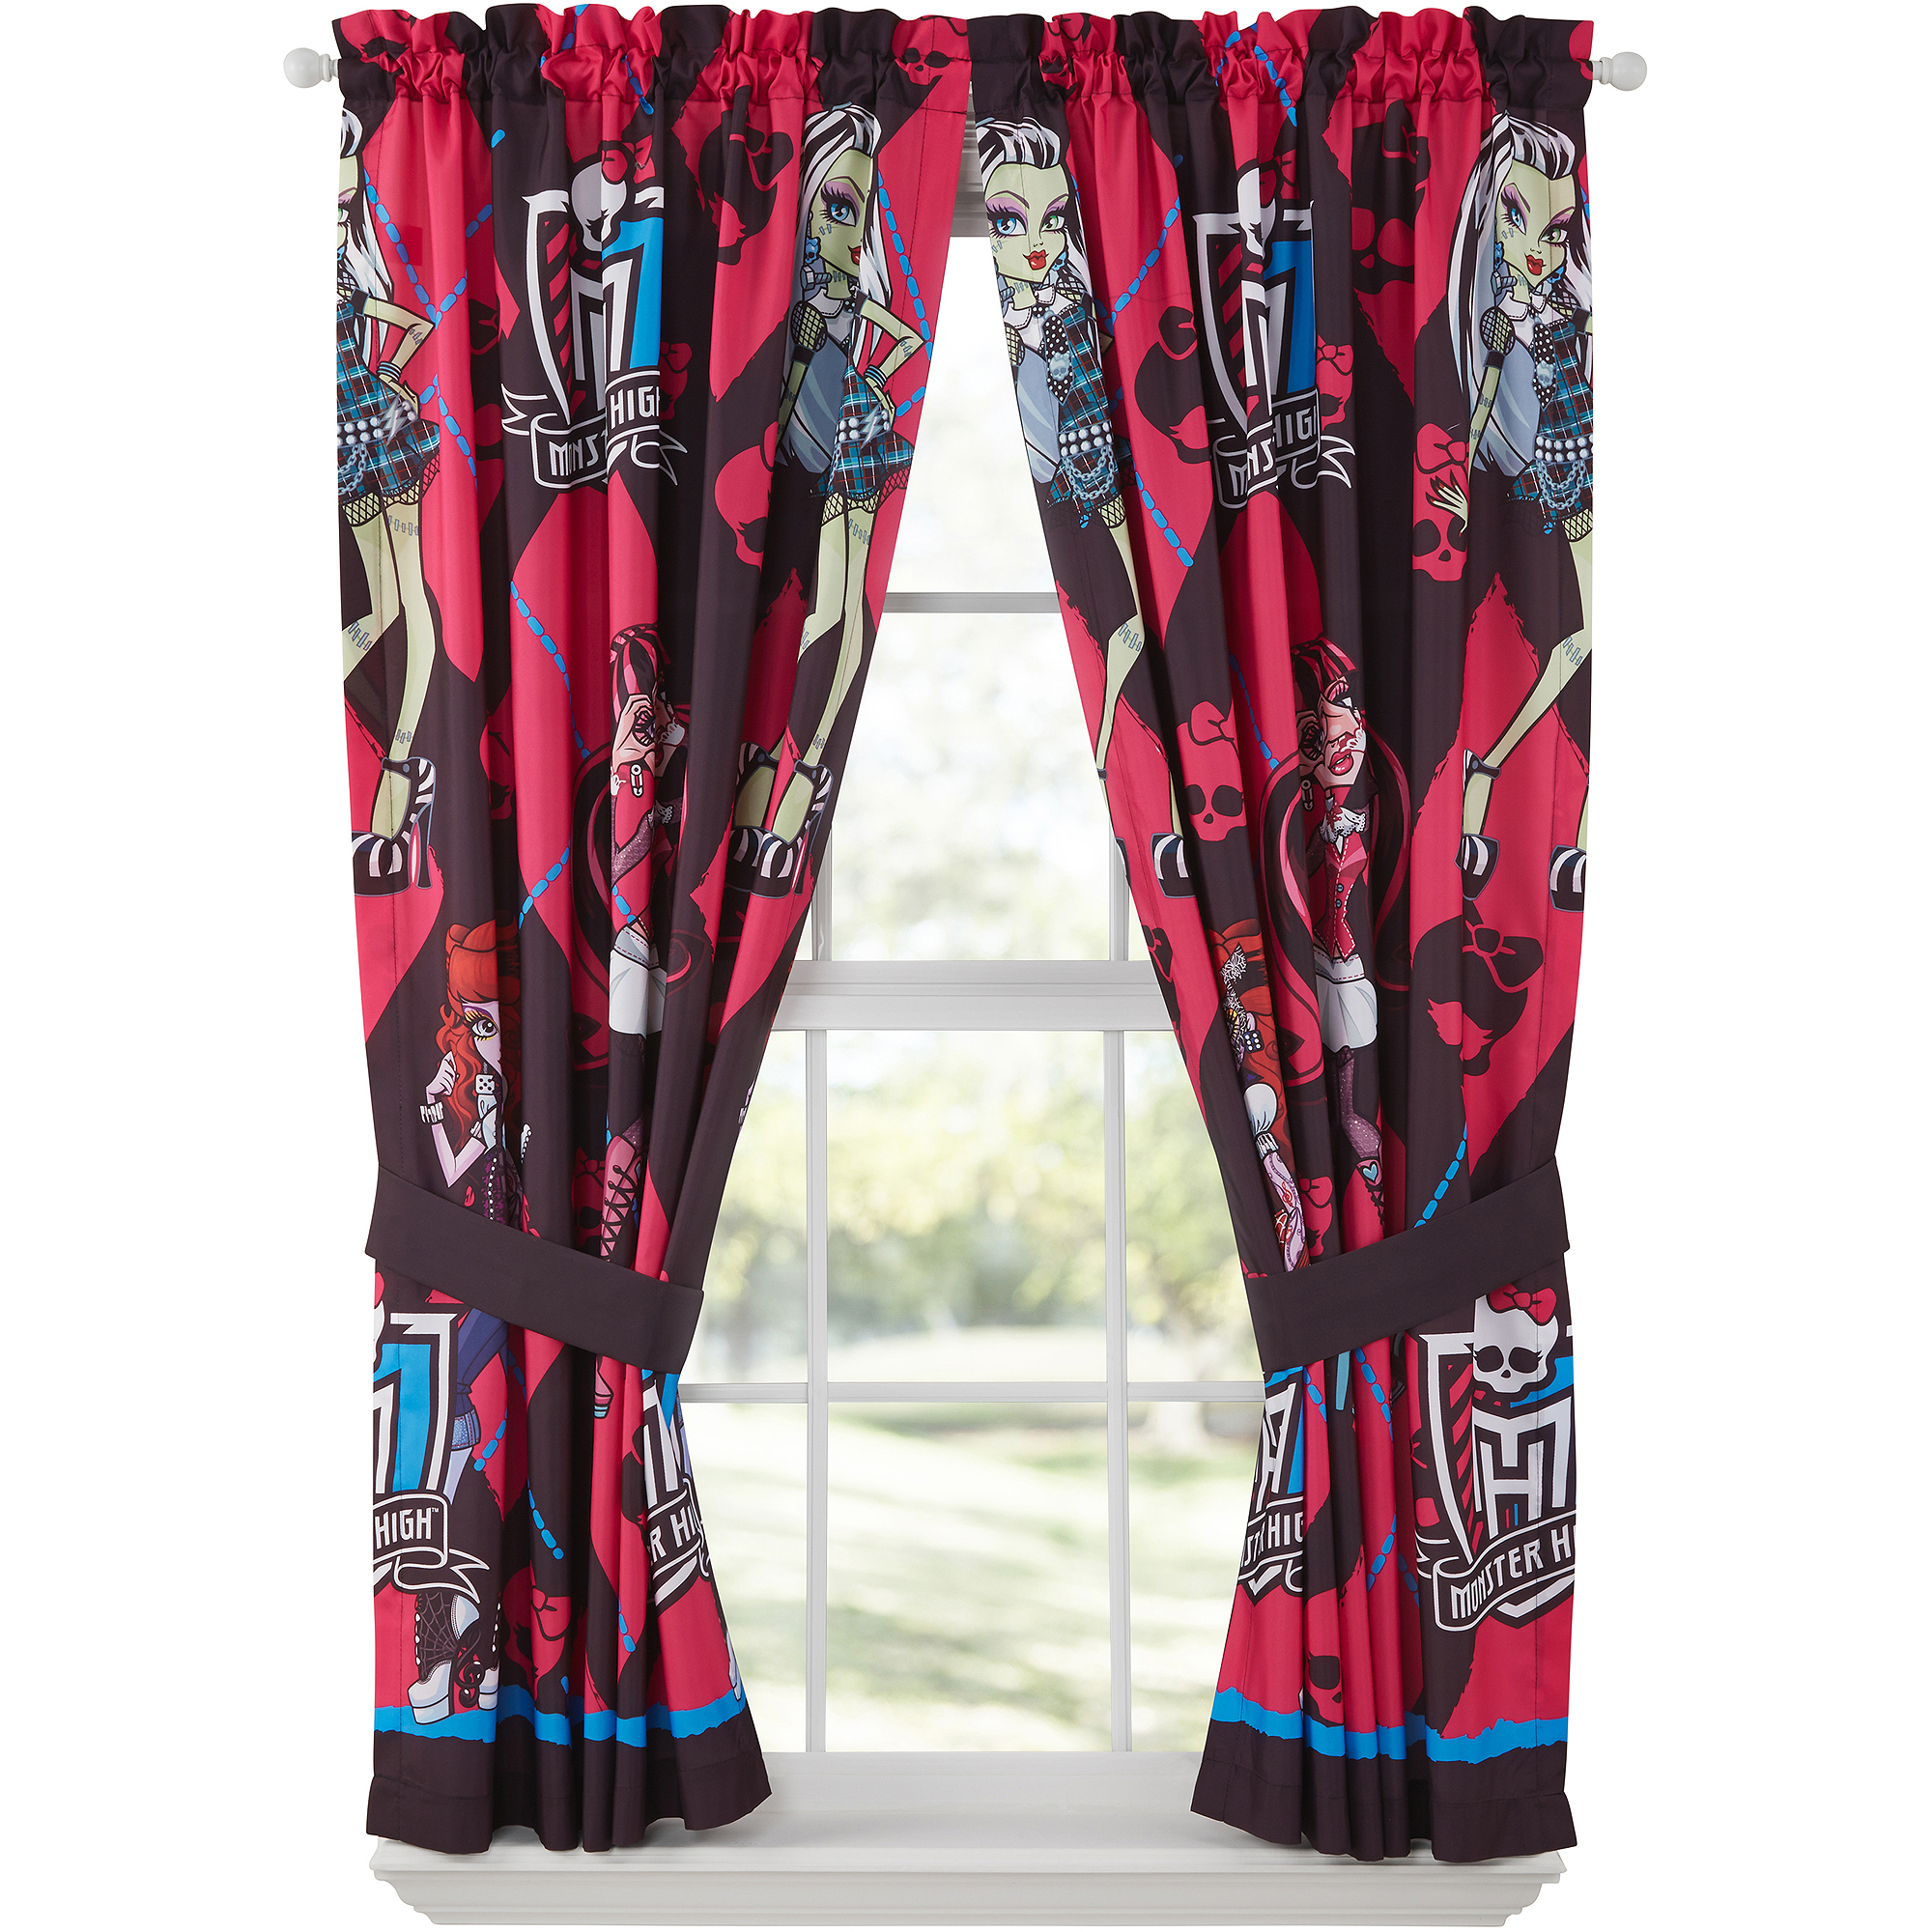 Monster High Drapes, Set of 2